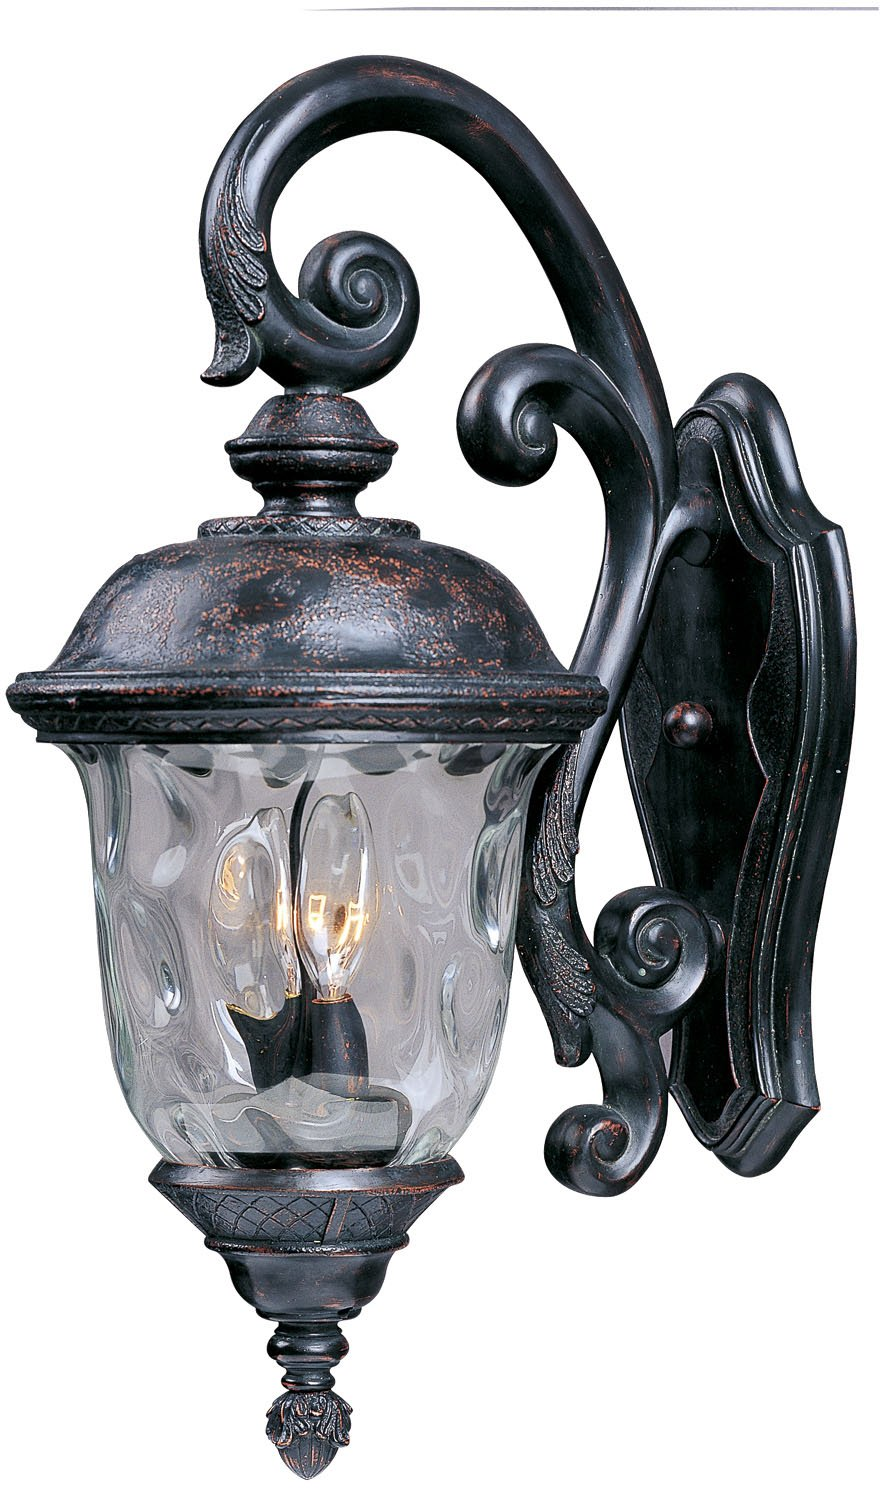 Maxim lighting 3497wgob carriage house dc 3 light top mount outdoor maxim lighting 3497wgob carriage house dc 3 light top mount outdoor 265 inch wall lantern oriental bronze finish wall sconces amazon aloadofball Gallery